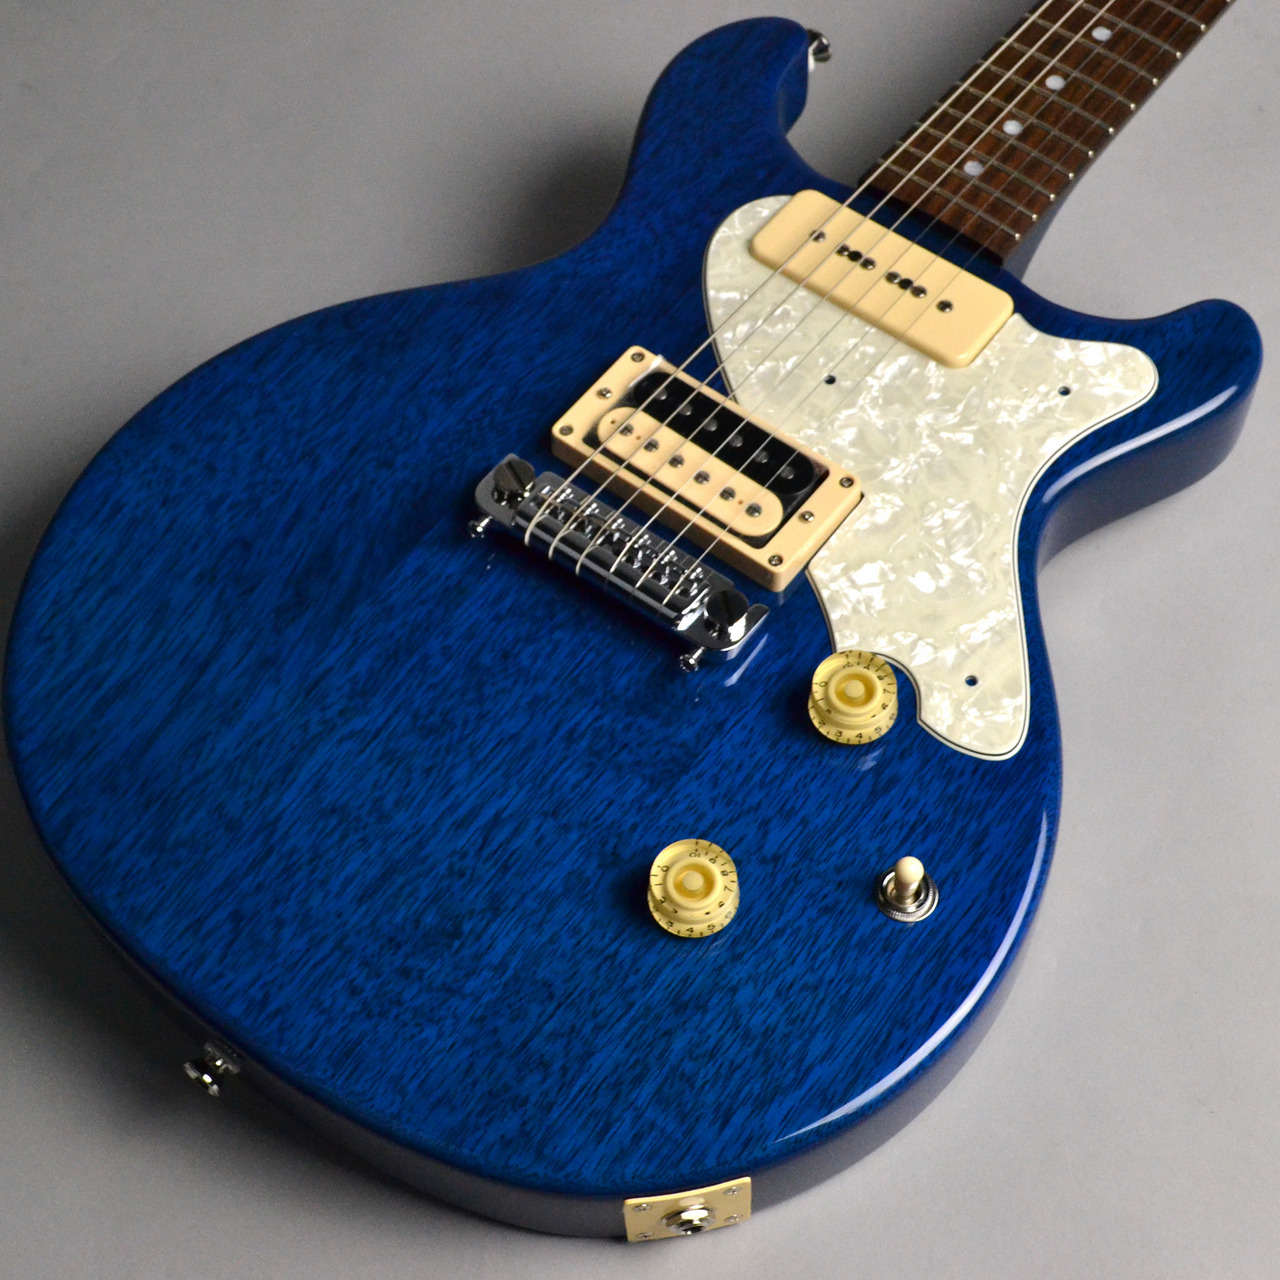 Rabbit is USA-2 Blue Korina Les paul Junior type